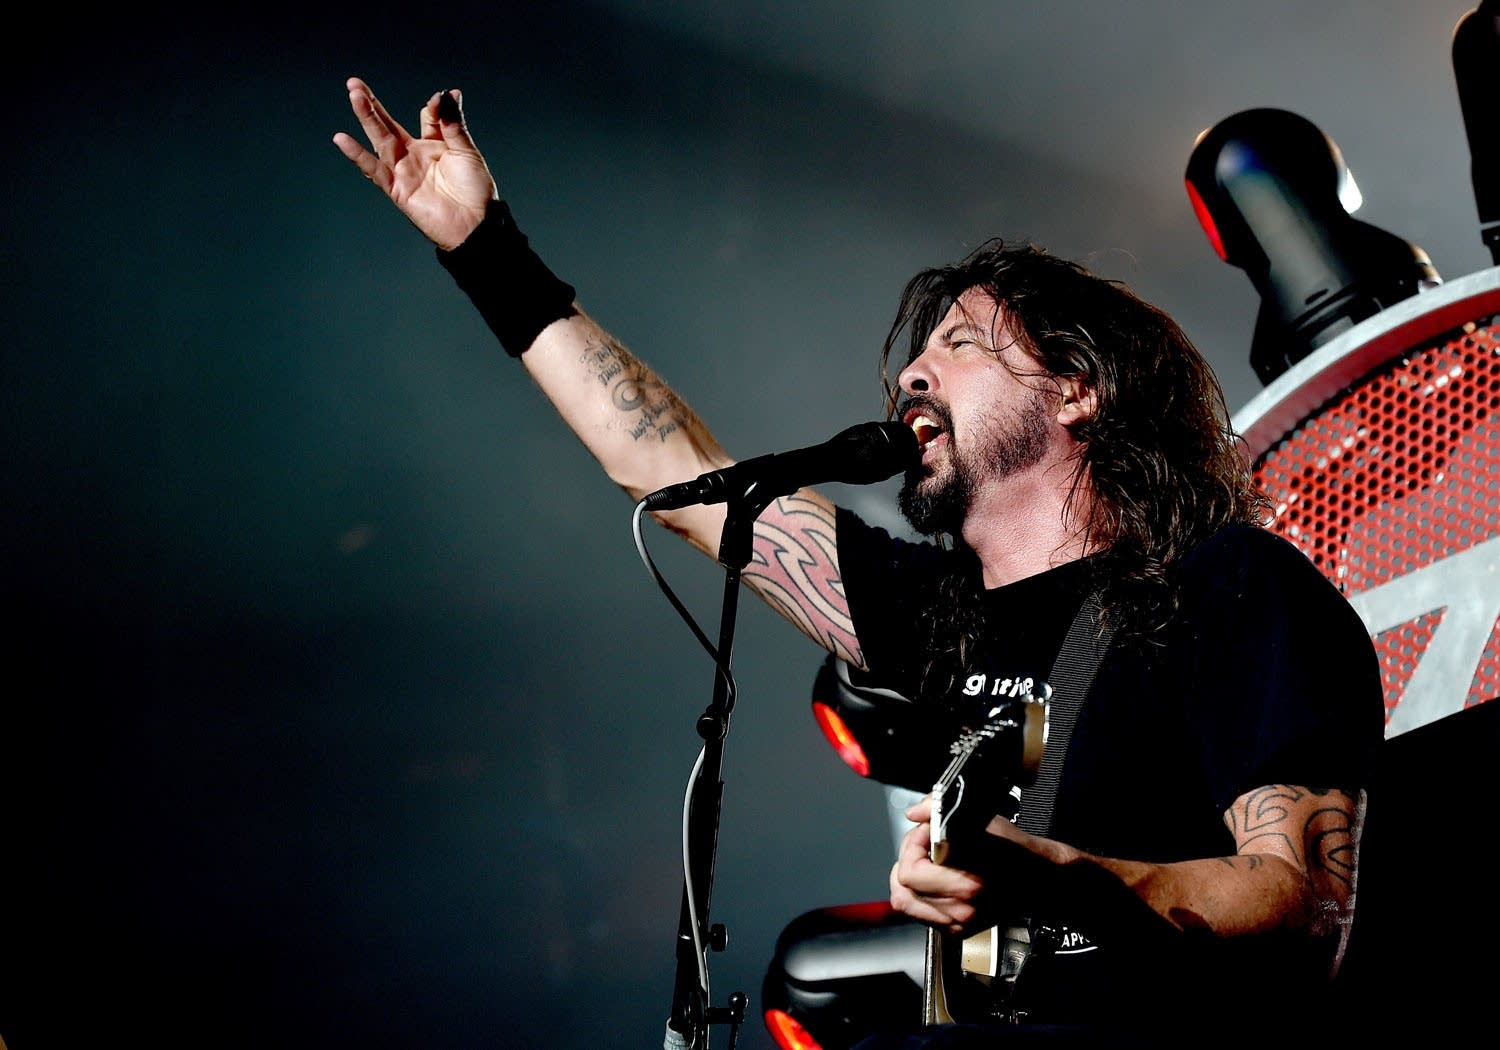 Musician Dave Grohl of the Foo Fighters